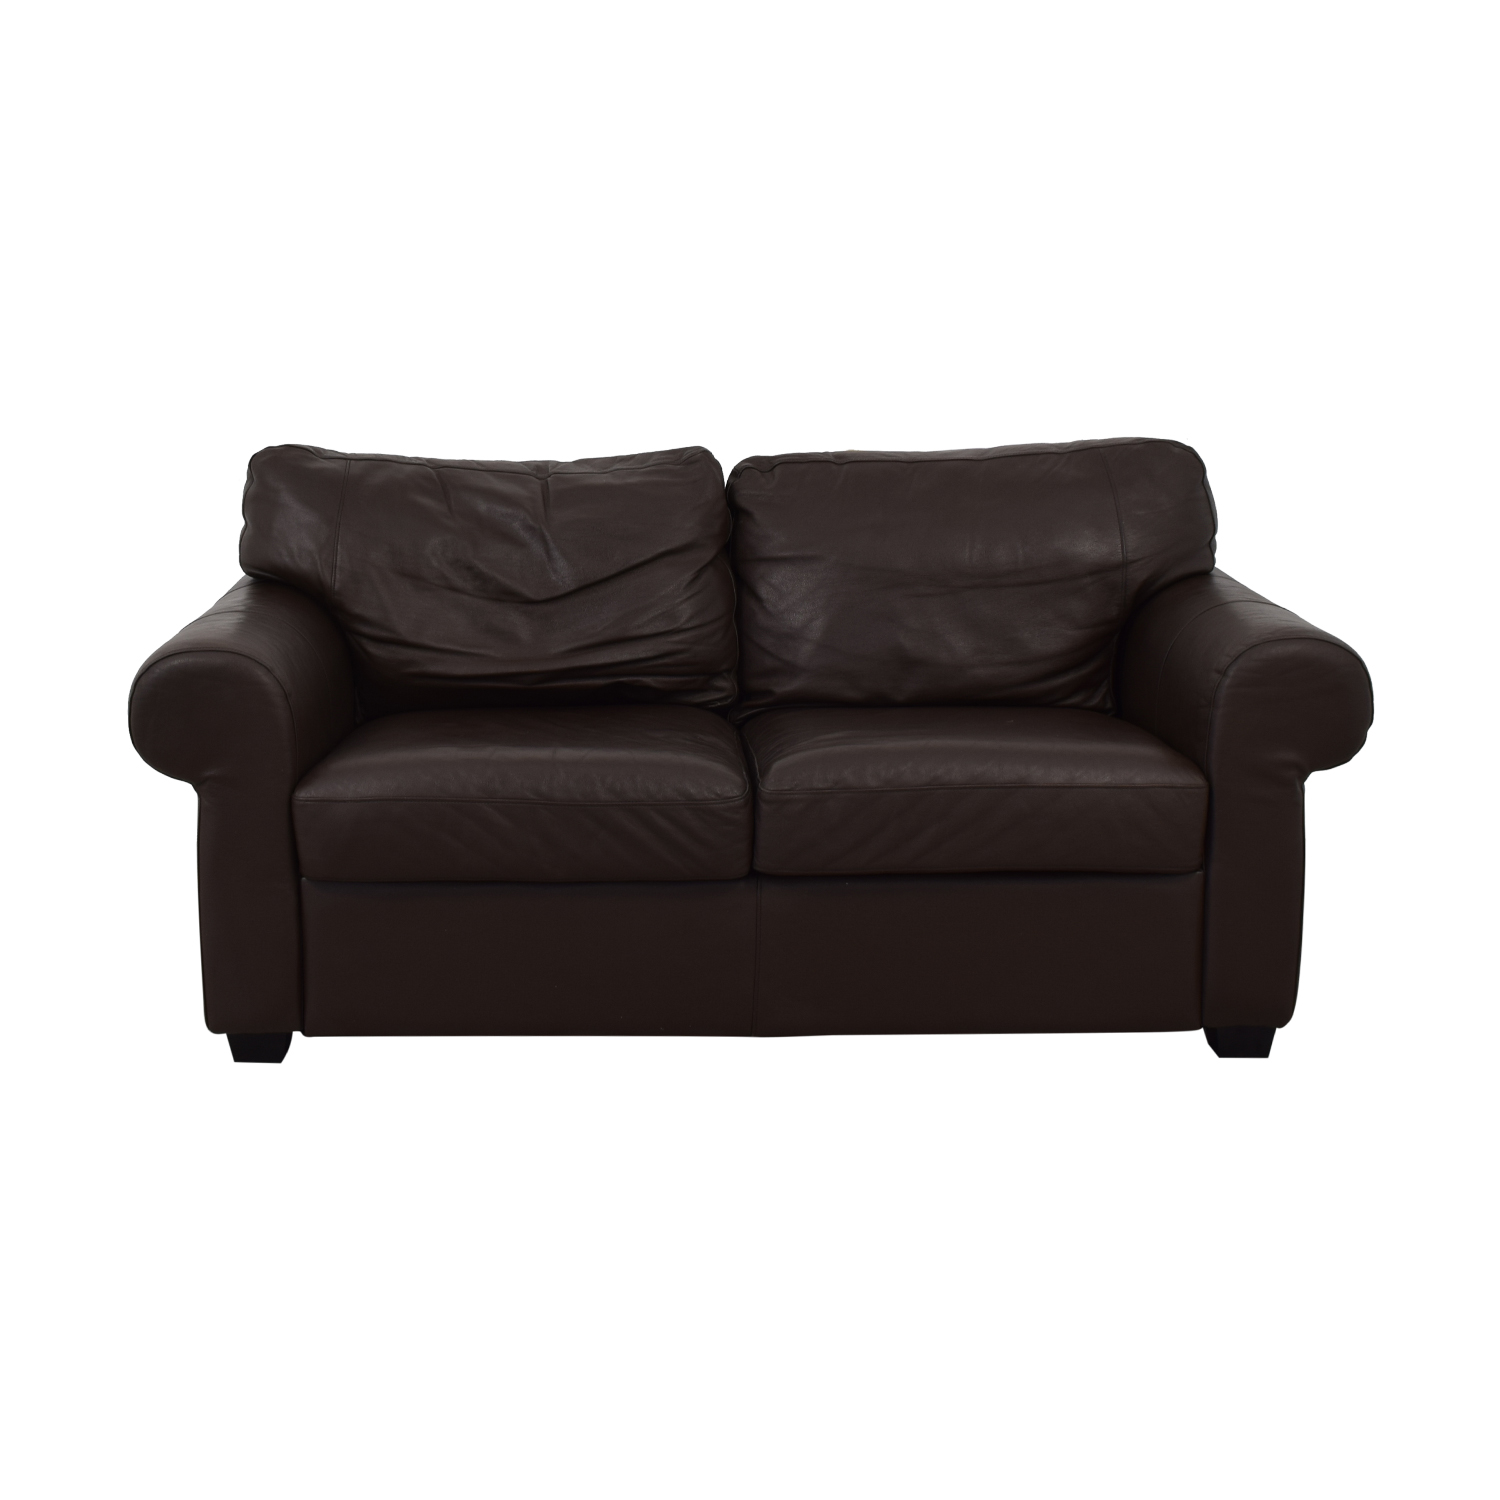 Ektorp Leather Loveseat / Classic Sofas